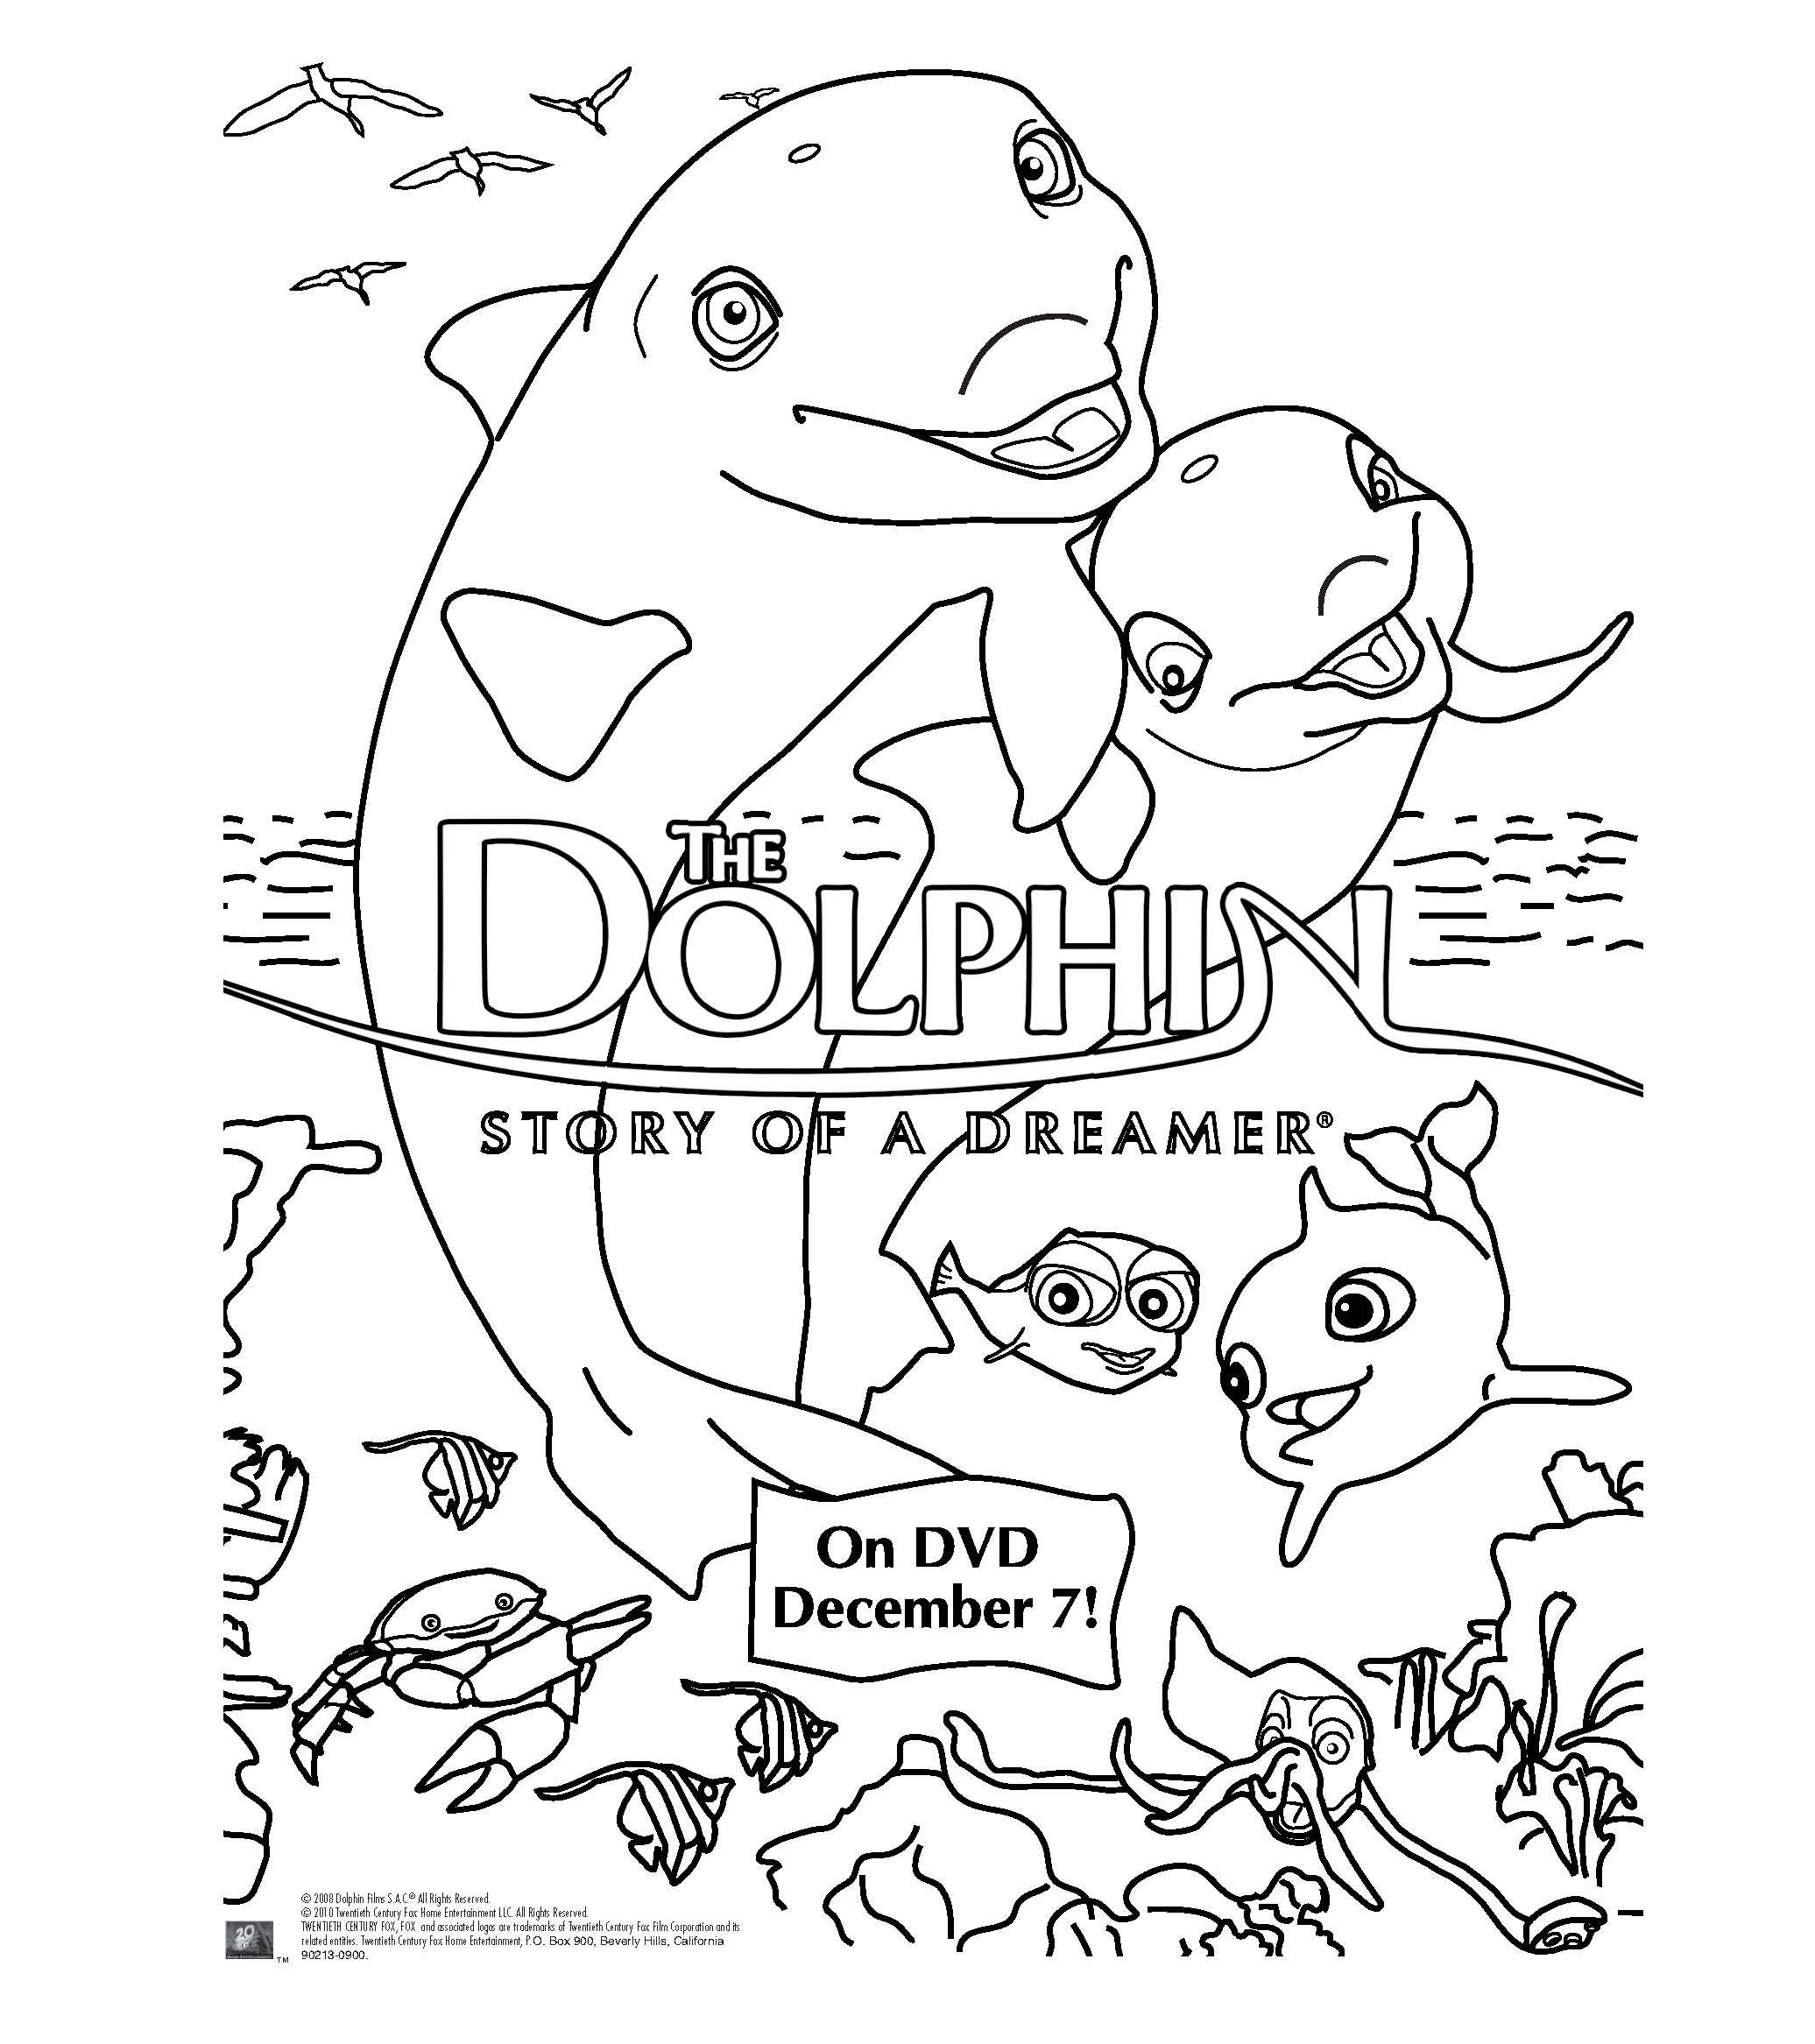 dolphin tale printable coloring pages - photo#29